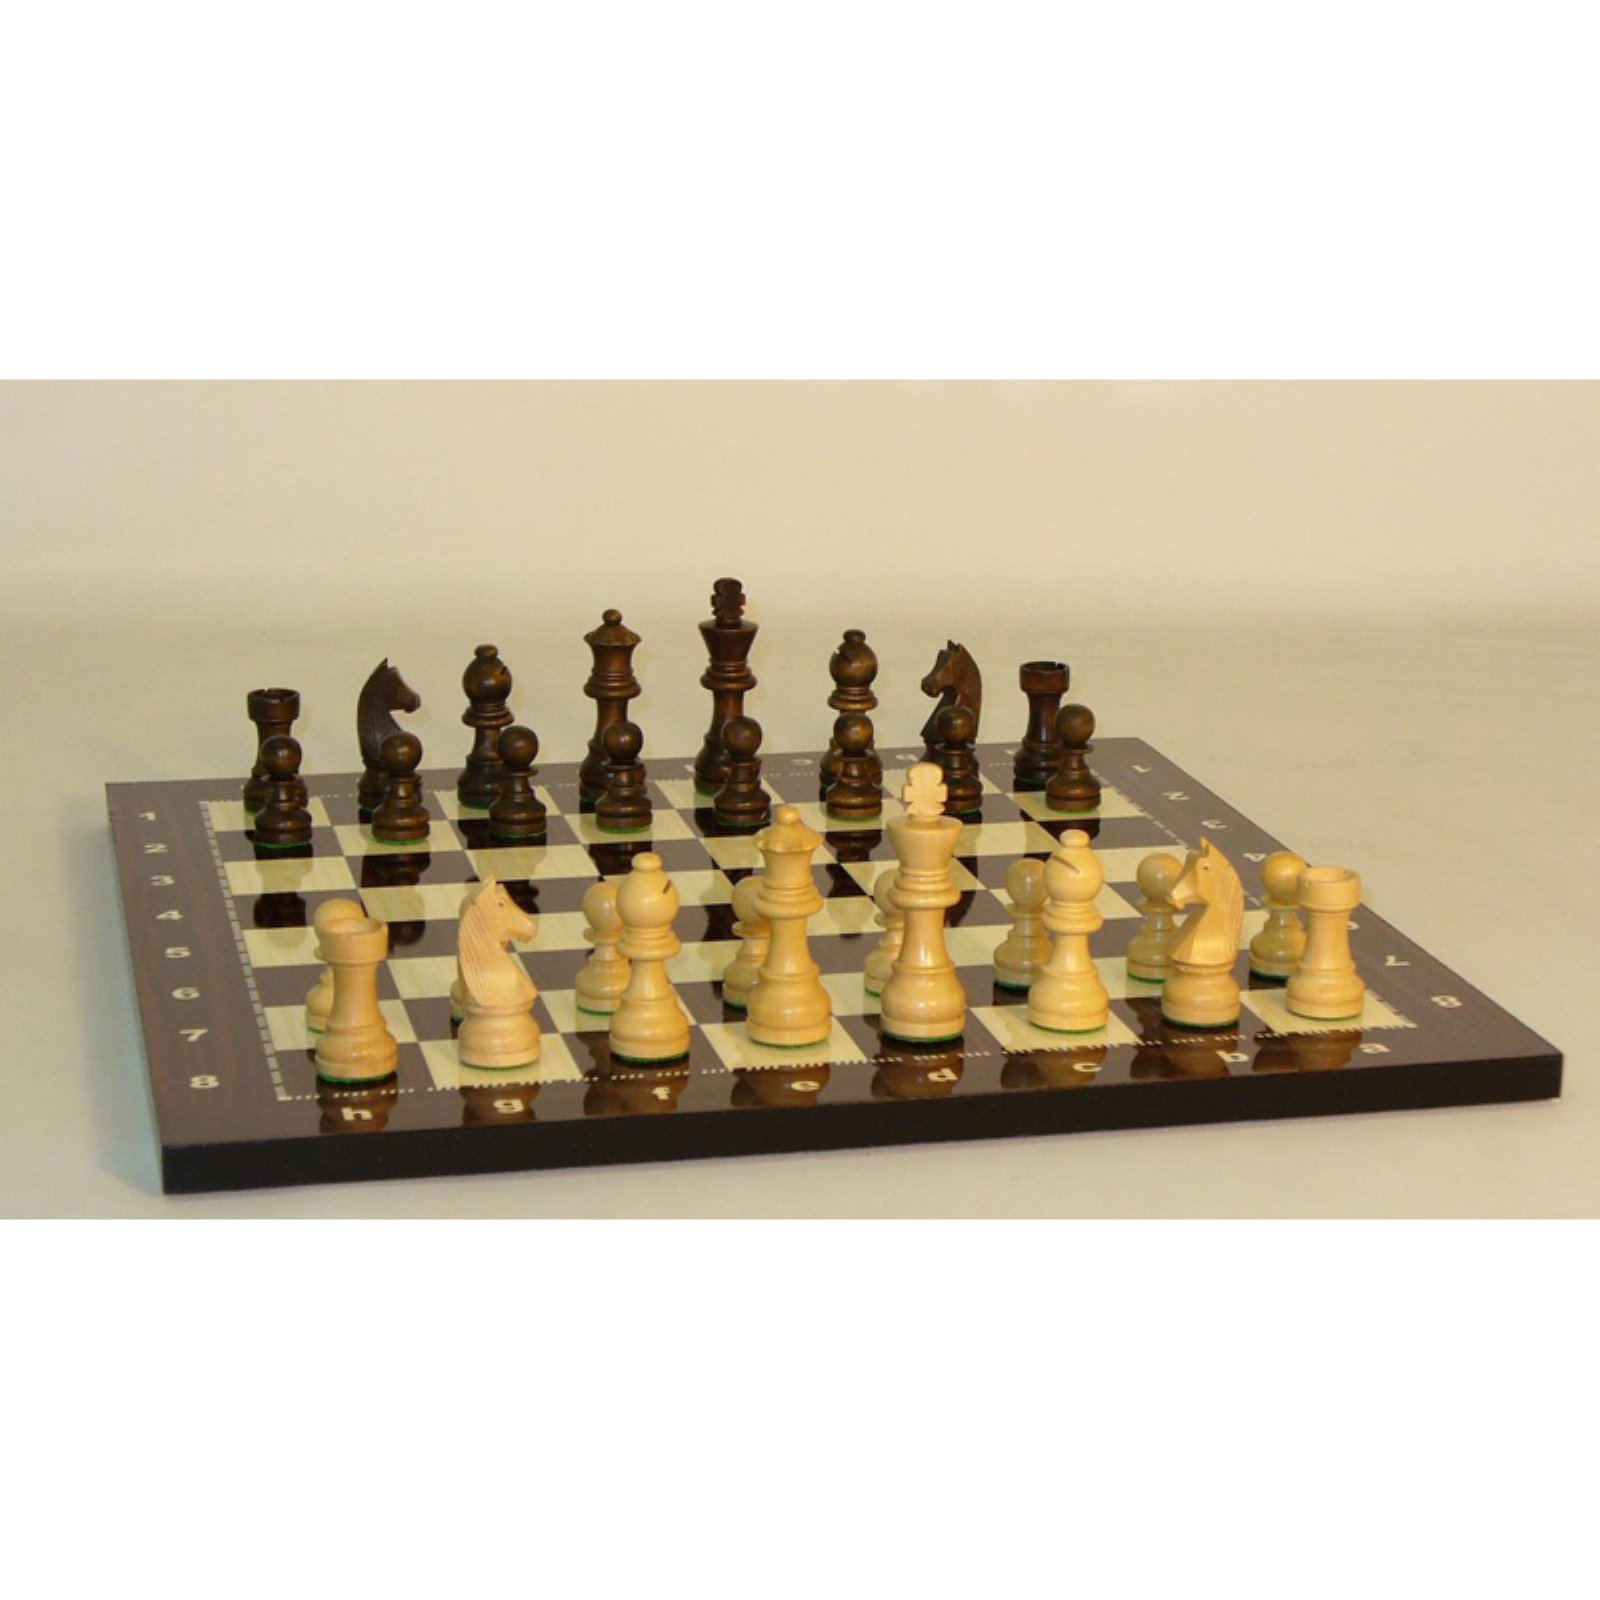 German Knight Chess Set on Alpha Numeric Decoupage Board